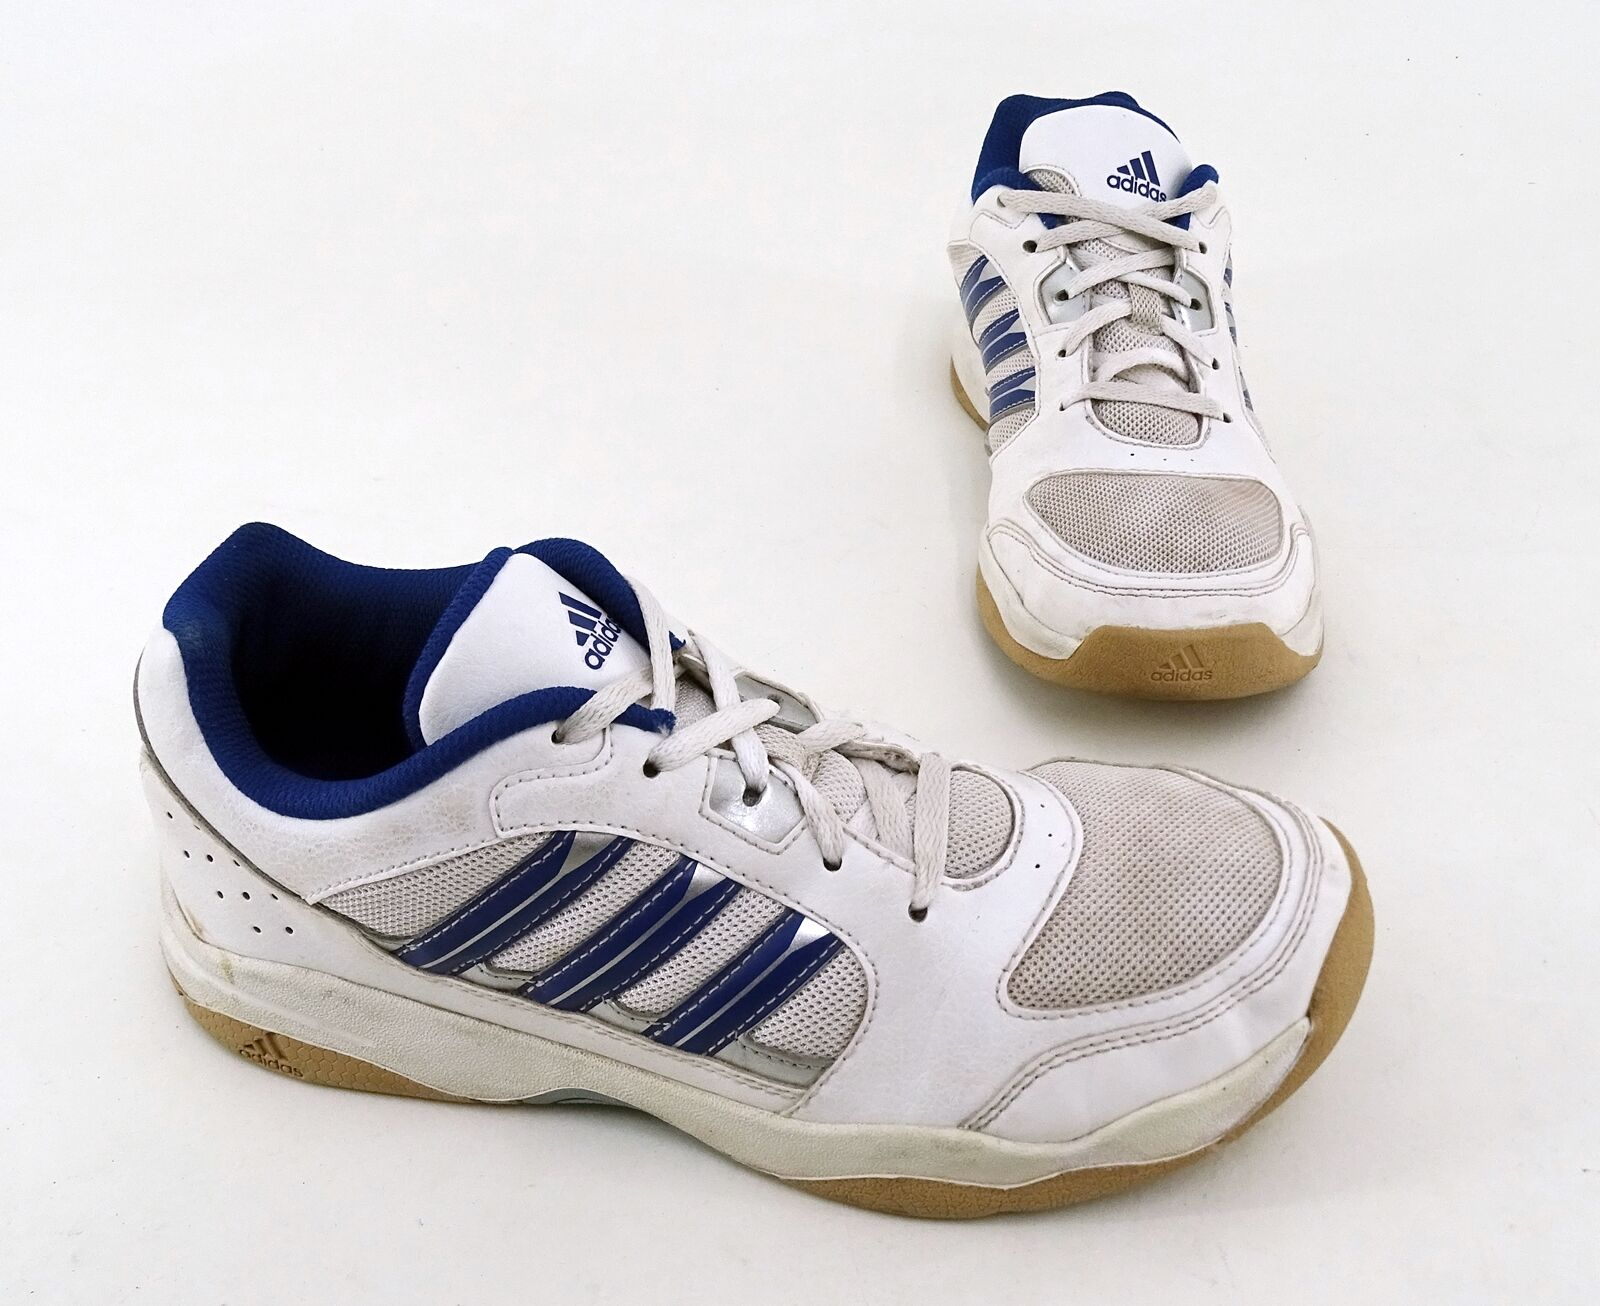 Basket Adidas Lacets Basses Indoor Cuir Synthétique Textile Blanc Taille 4,5 = 37 1/3